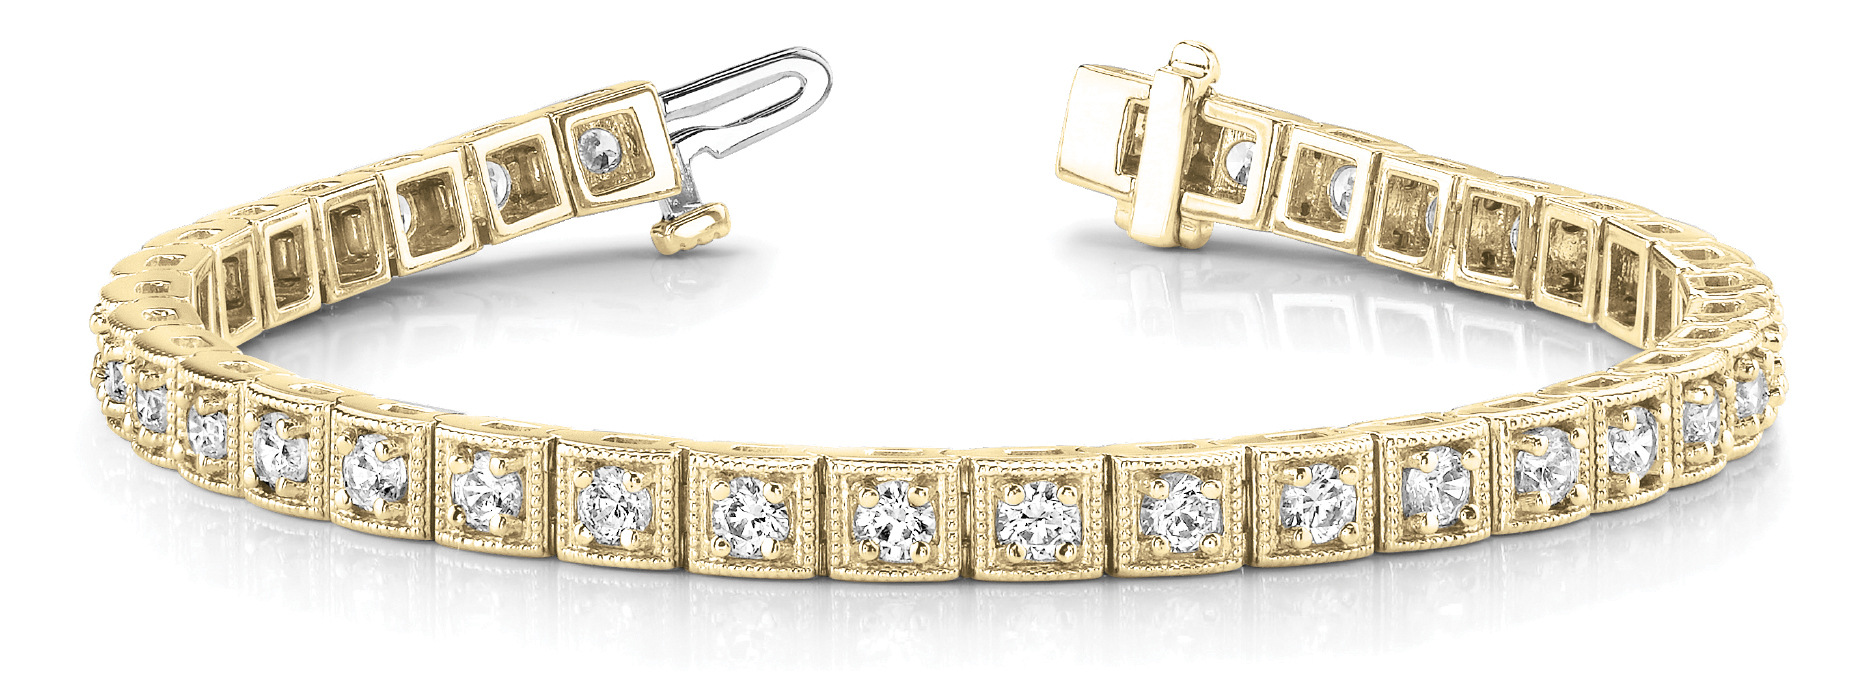 Round Diamond Square Tennis Bracelet 2 ct. Yellow Gold